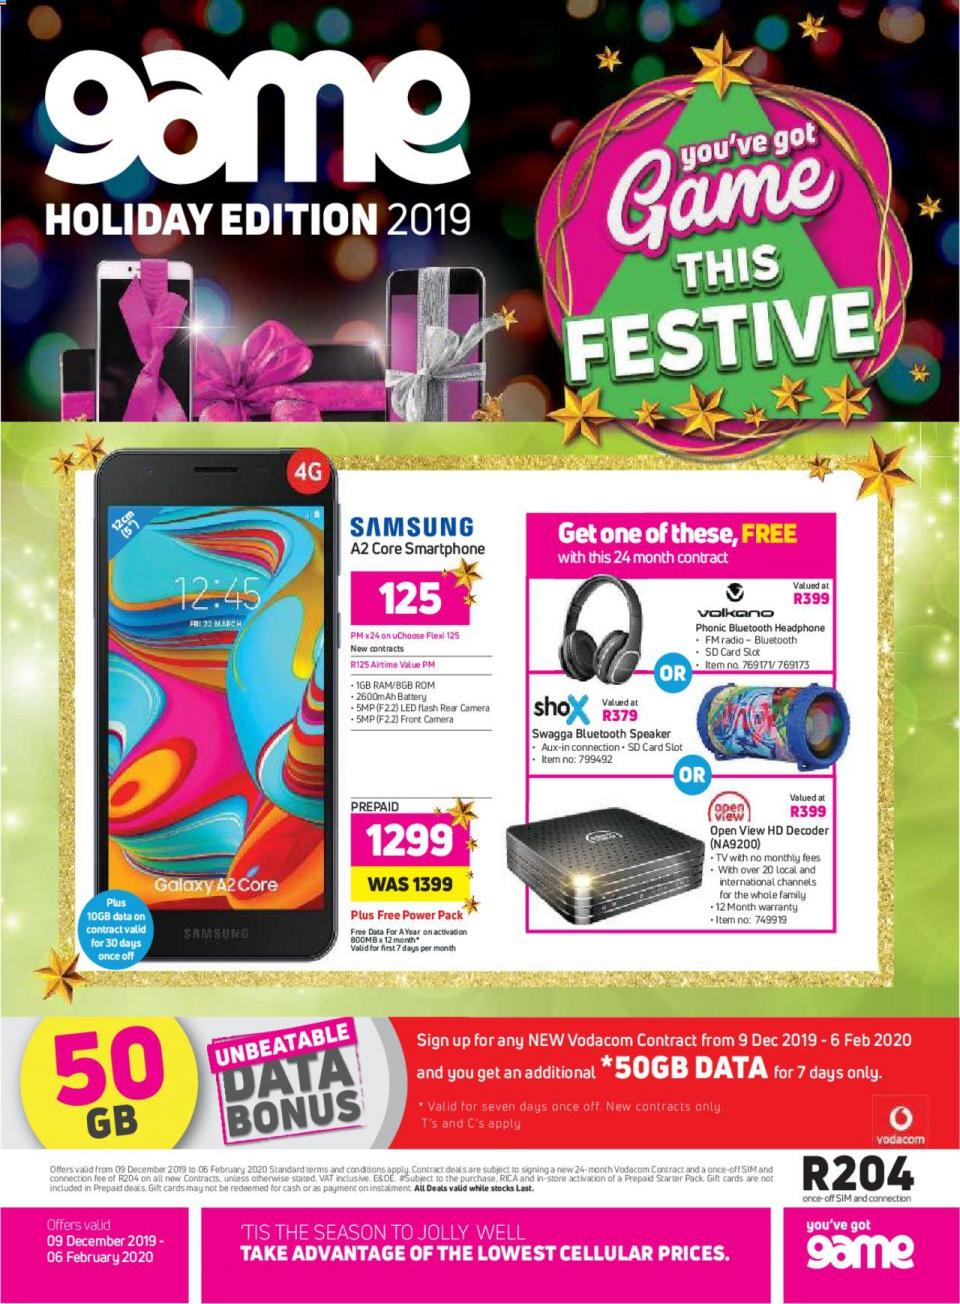 game specials cellular holiday edition 09 december 2019